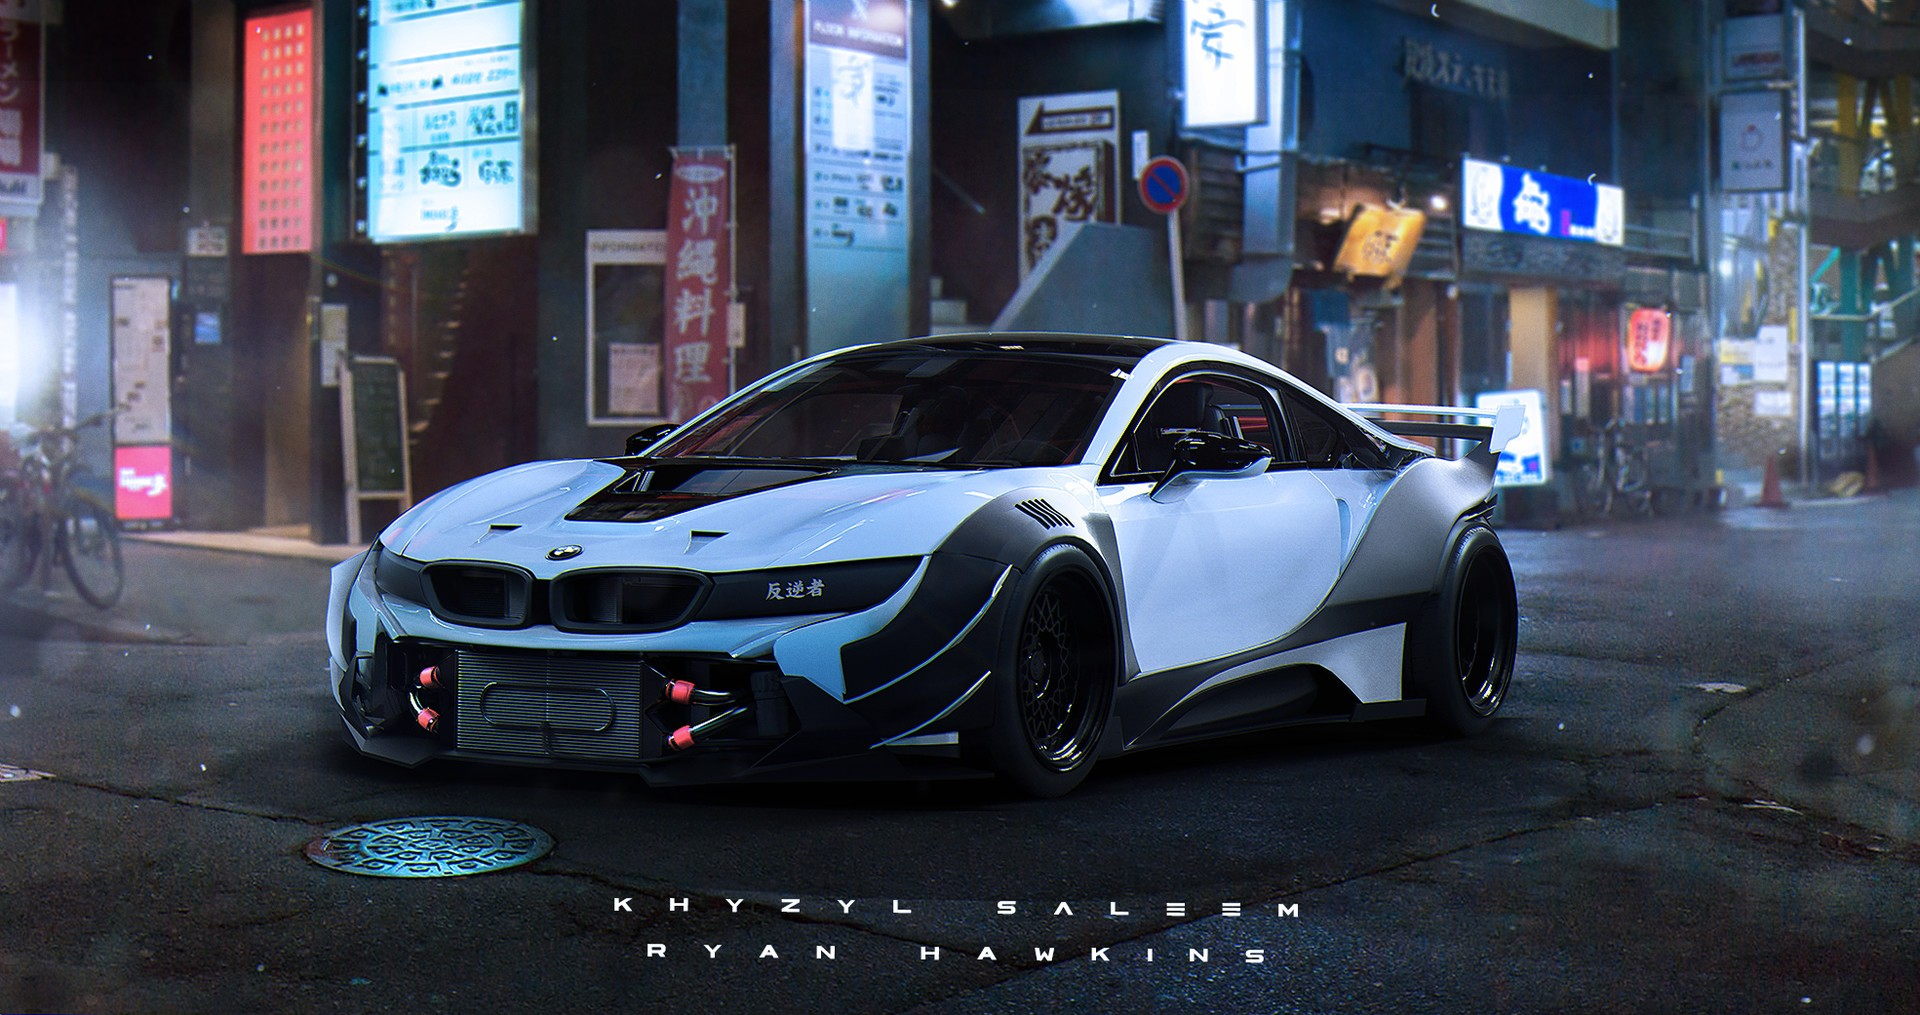 Super Car 5760x1080 Wallpaper Khyzyl Saleem Artwork Tuning Bmw I8 Wallpapers Hd